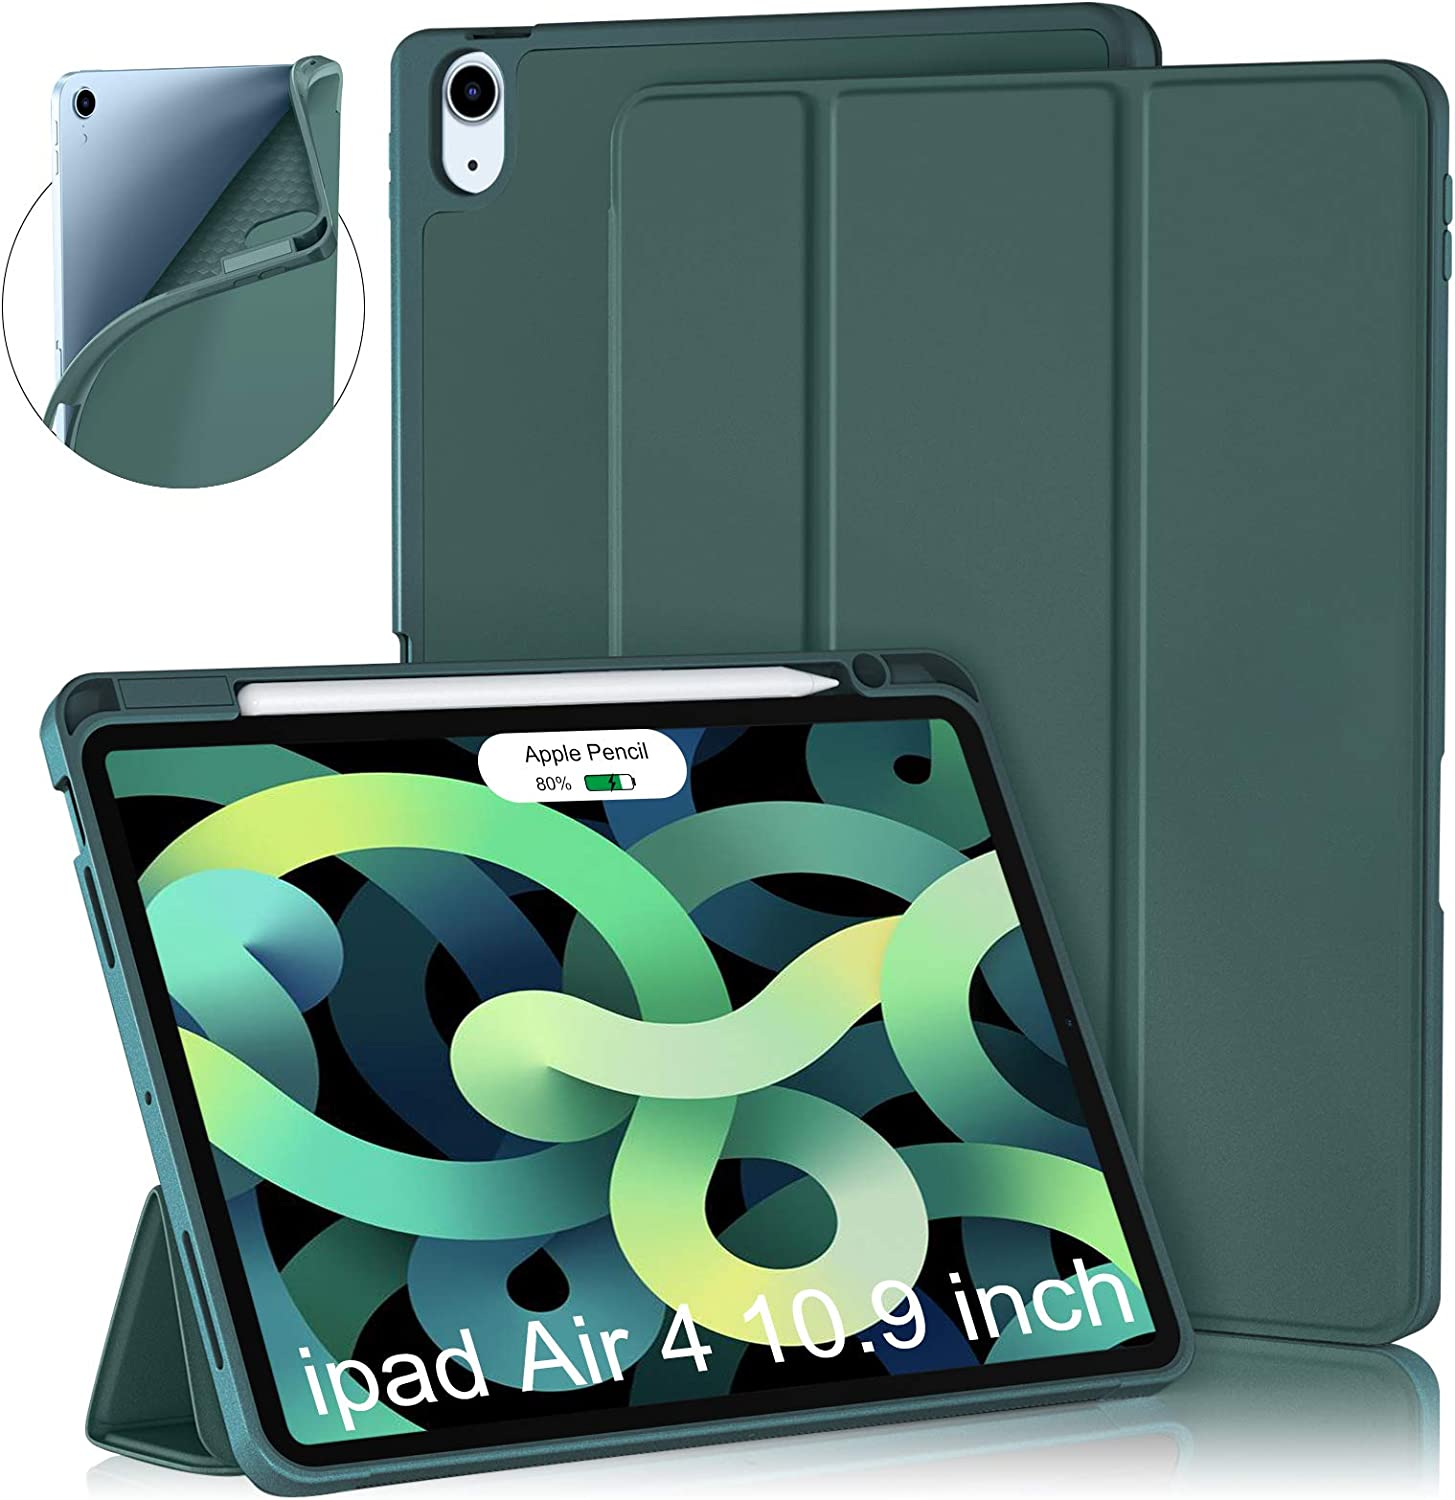 Cousper Case for iPad Air 4th Generation Case 10.9 Inch 2020, Slim Stand Case for iPad Air 4th Case Cover with Pencil Holder [Support 2nd Apple Pencil Wireless Charging] [Auto Sleep/Wake], Deep Green